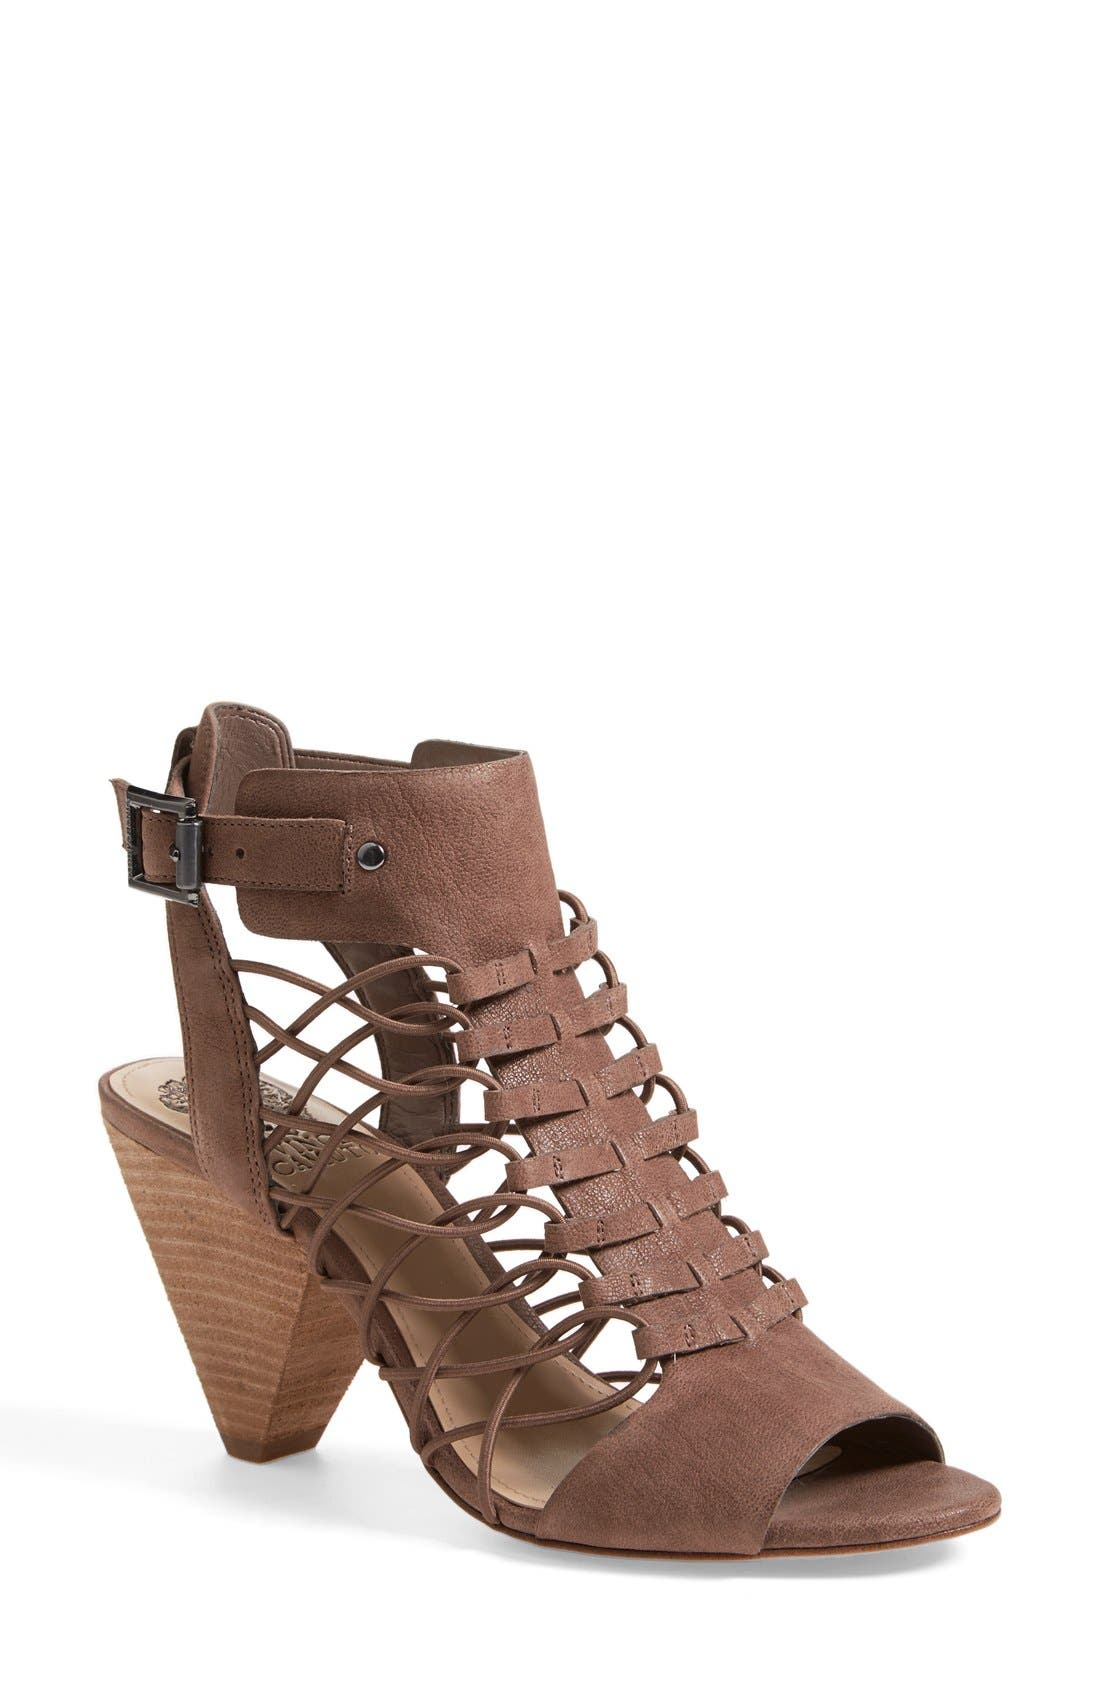 VINCE CAMUTO 'Evel' Leather Sandal